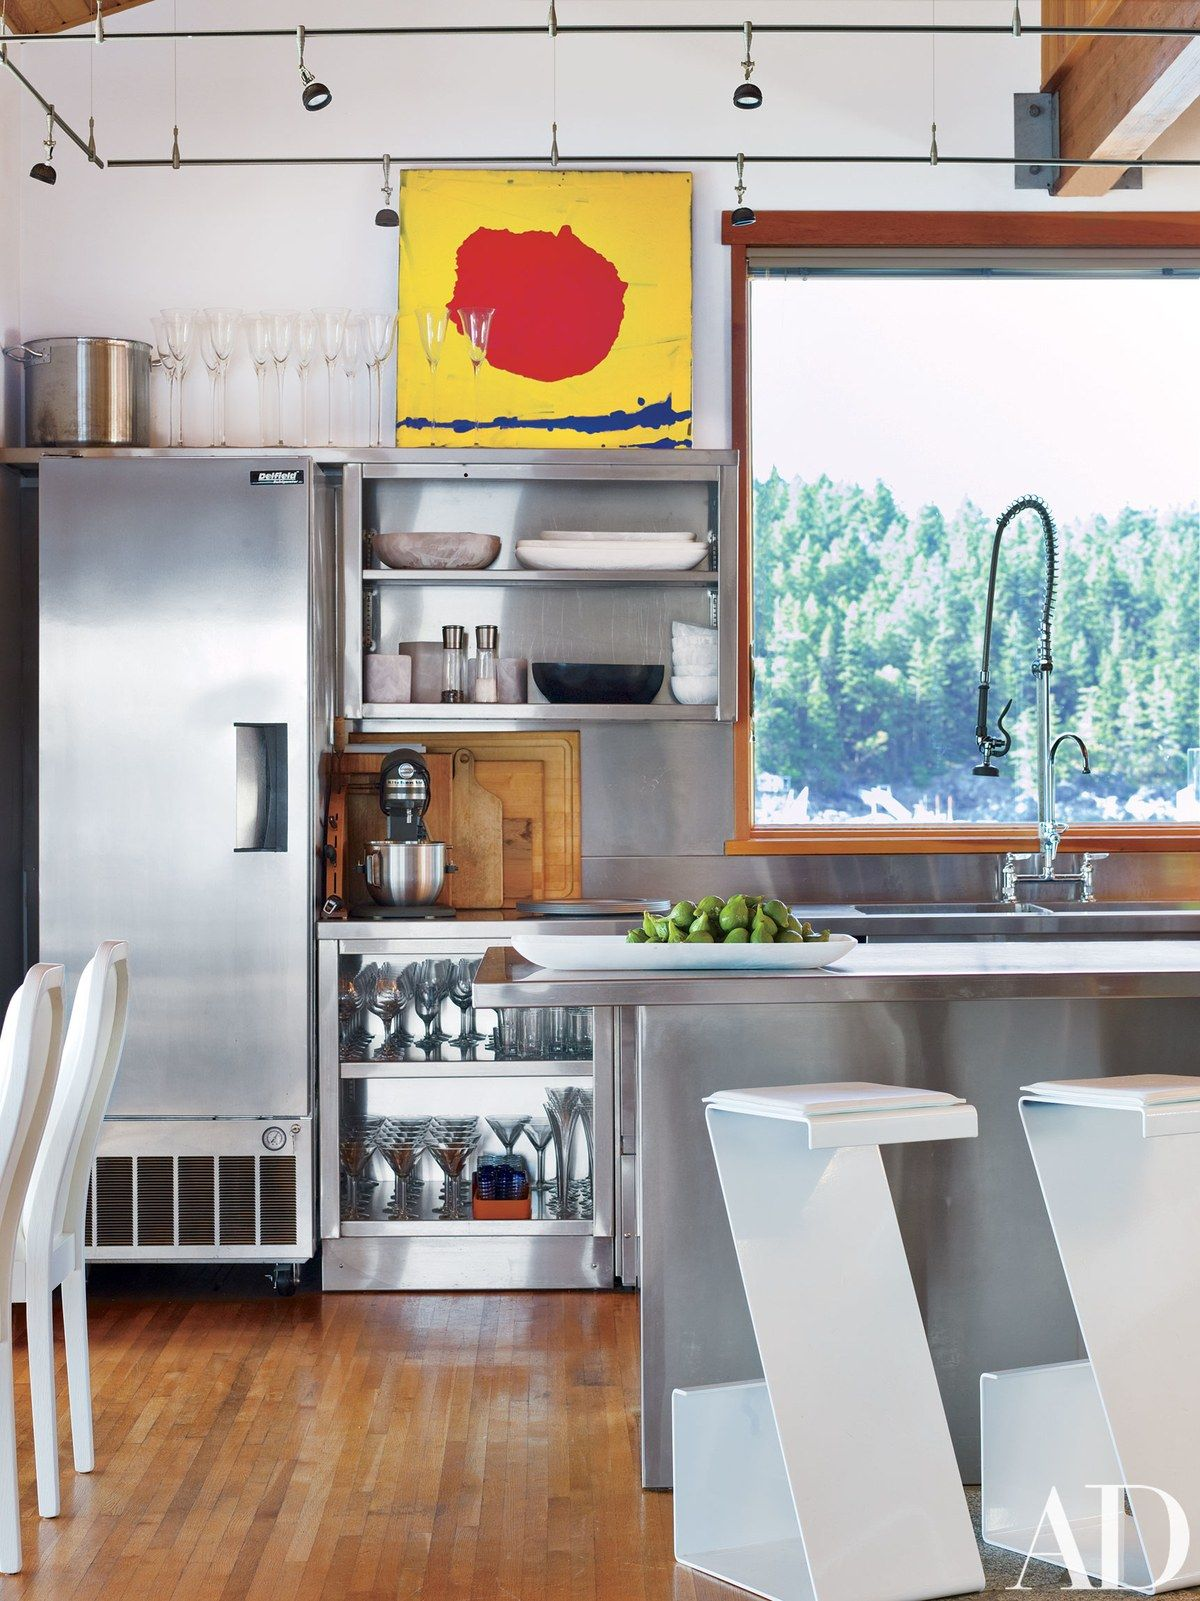 In the kitchen a bright wall sculpture is propped atop stainless